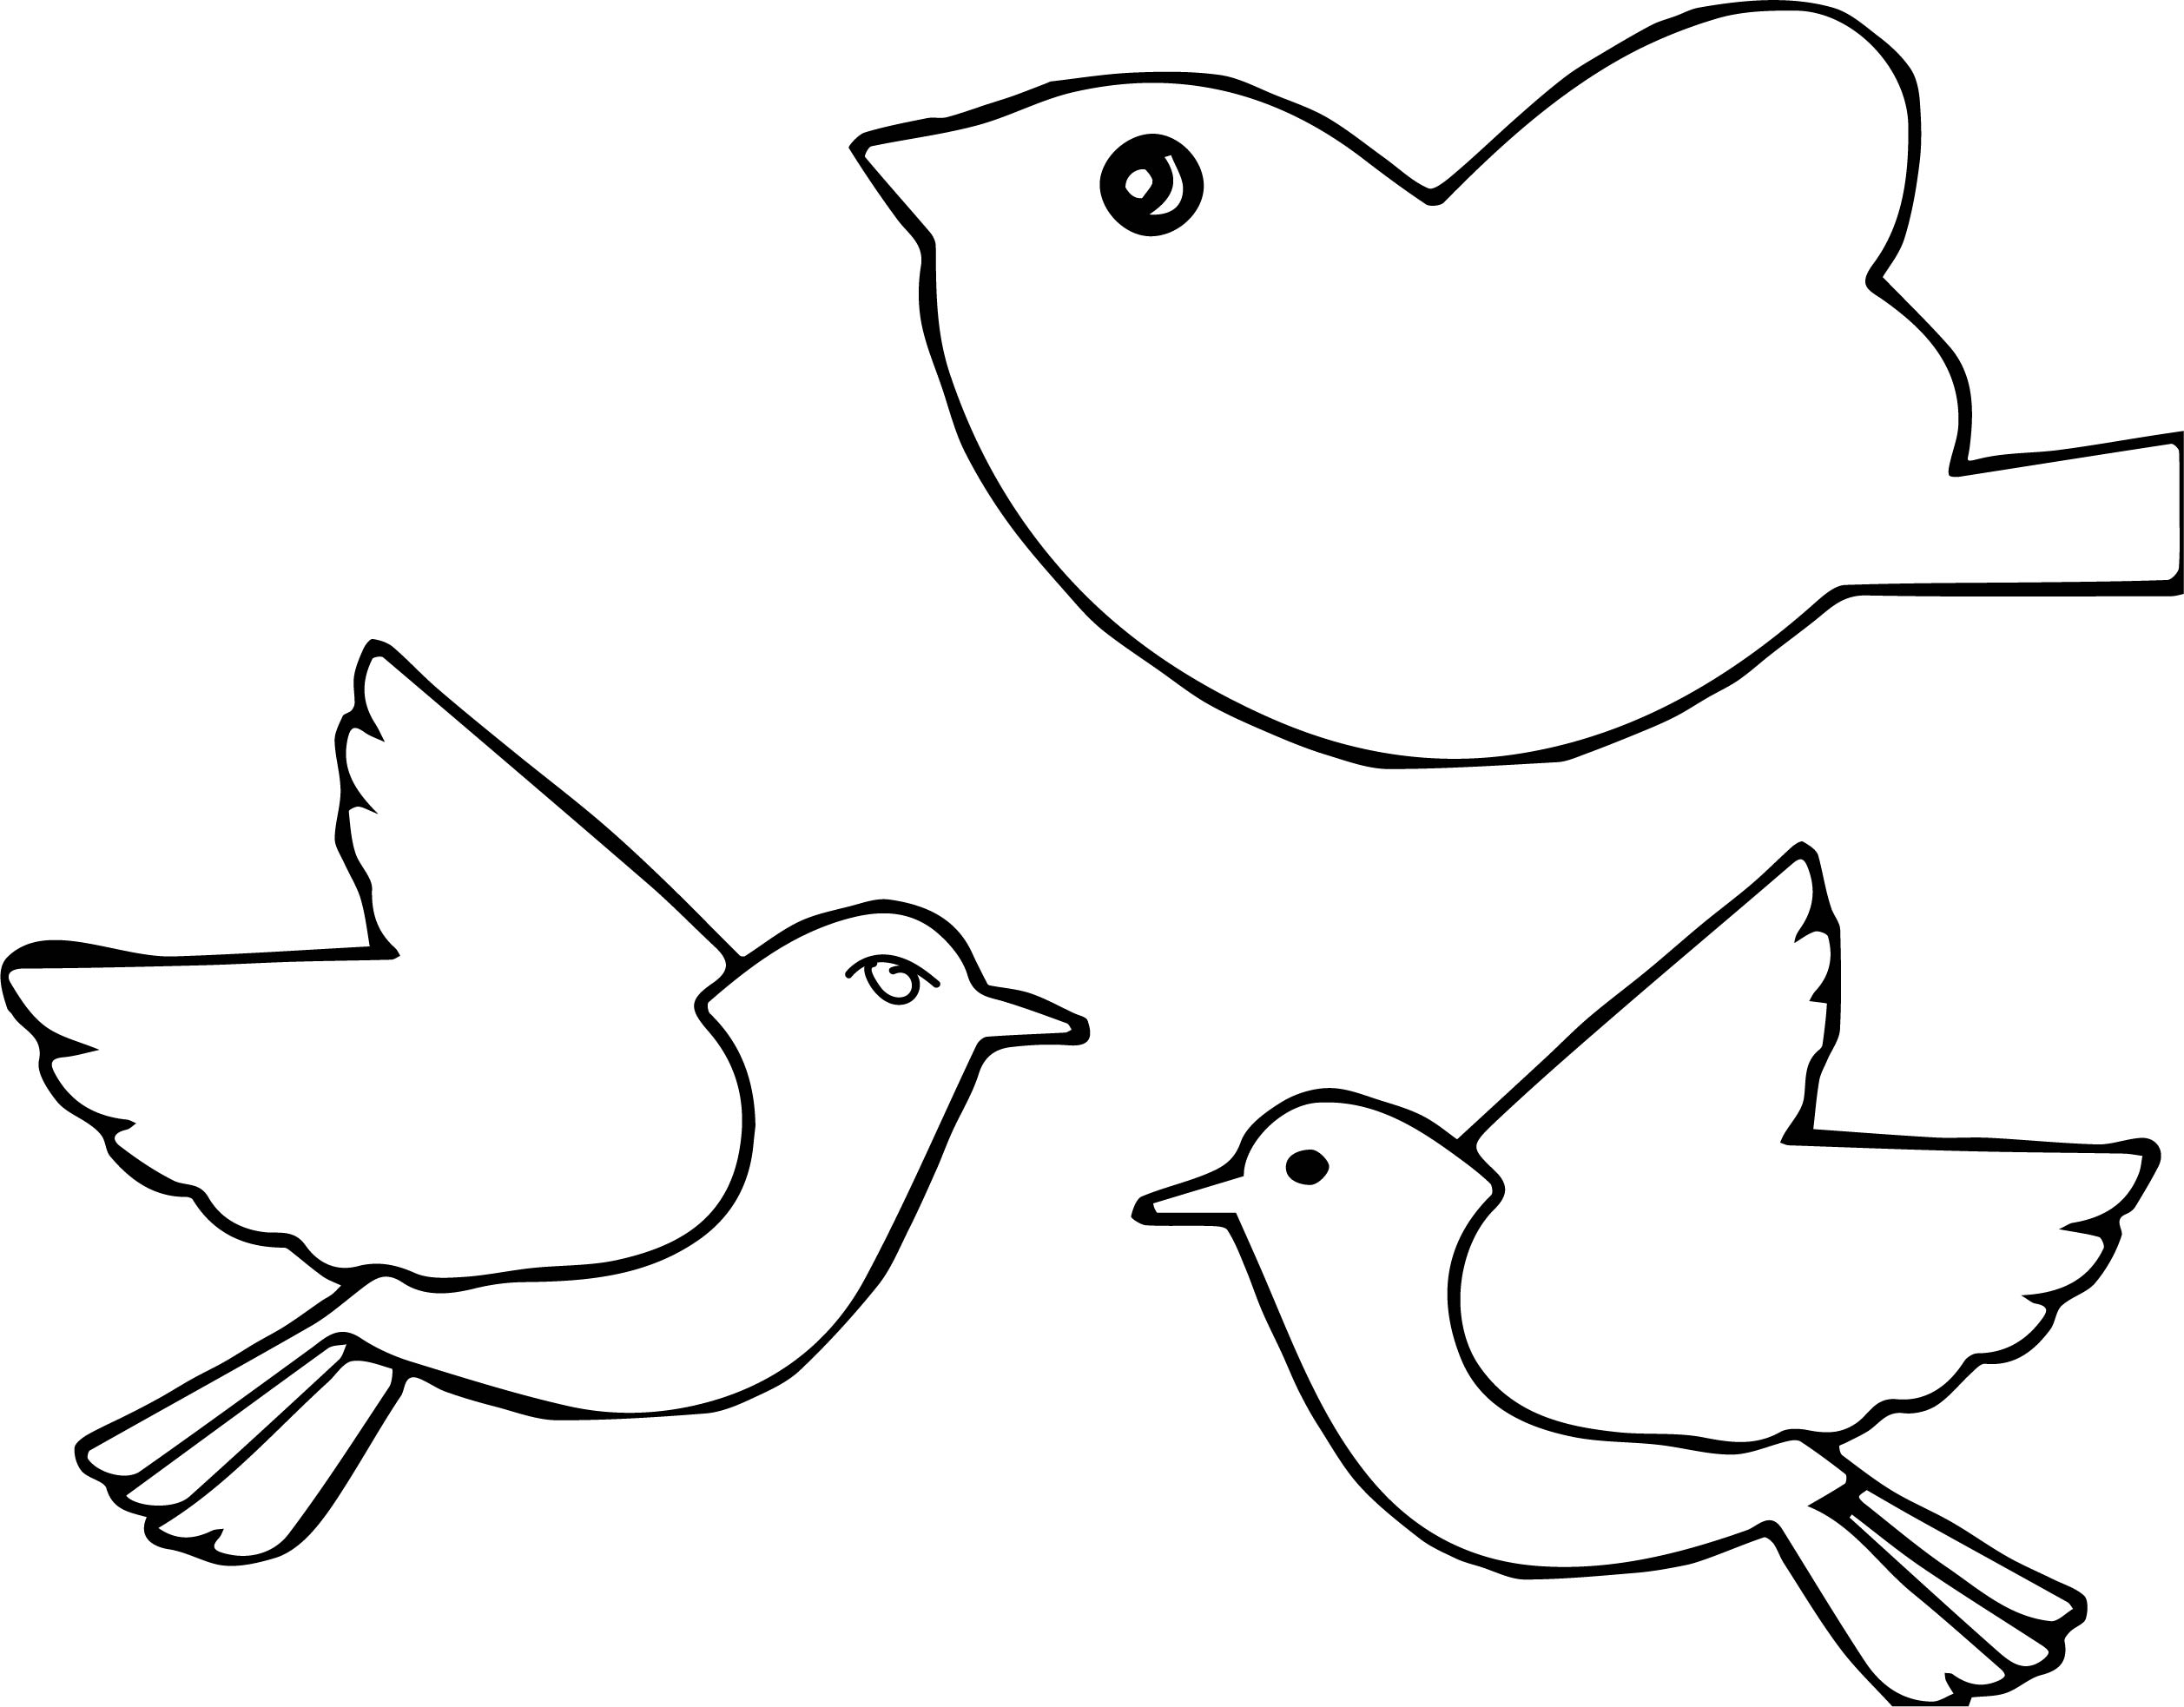 A Bird Coloring Page